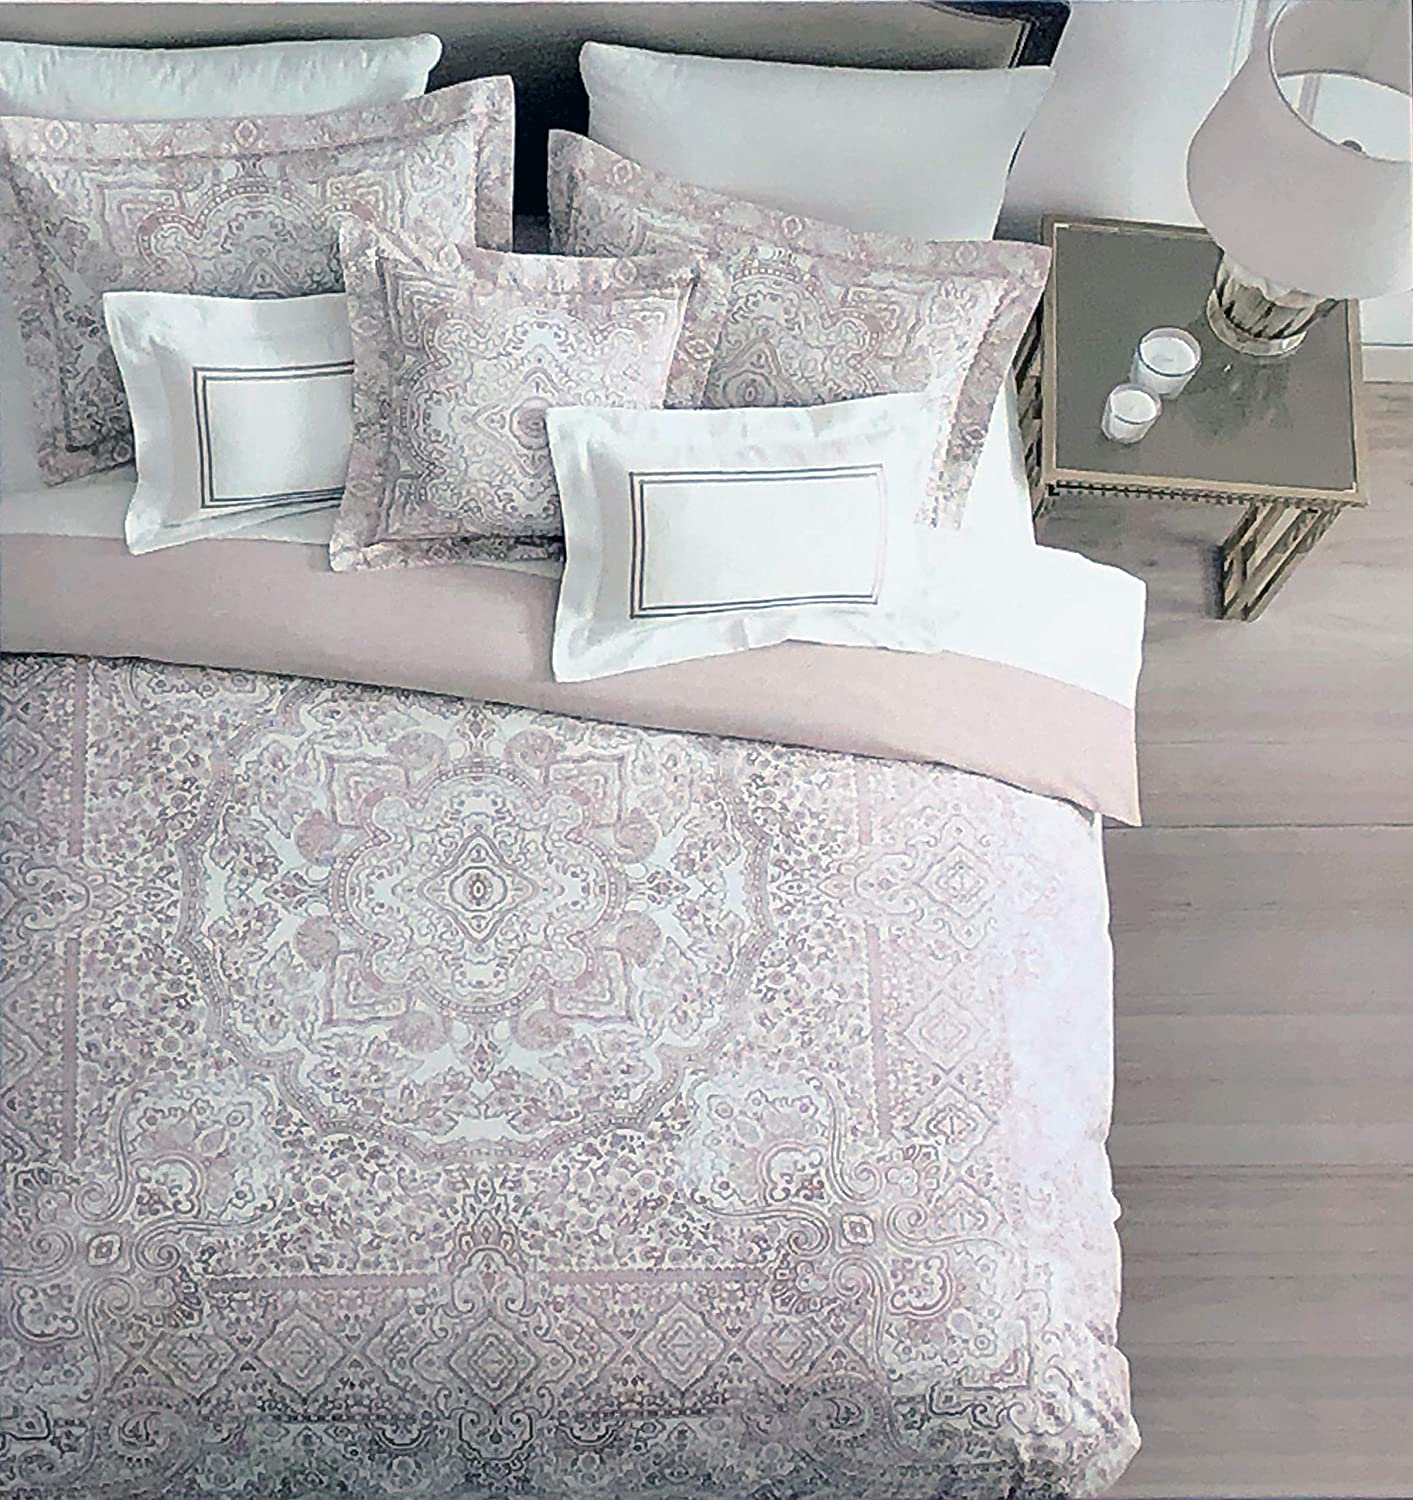 Tahari 3 Pc Reversible Duvet Cover Set Vintage Boho Hippie Style Intricate Tapestry Medallion Pattern Light Pink White, 100% Cotton Luxury Quilt Comforter Cover - Emmalyn (Queen)